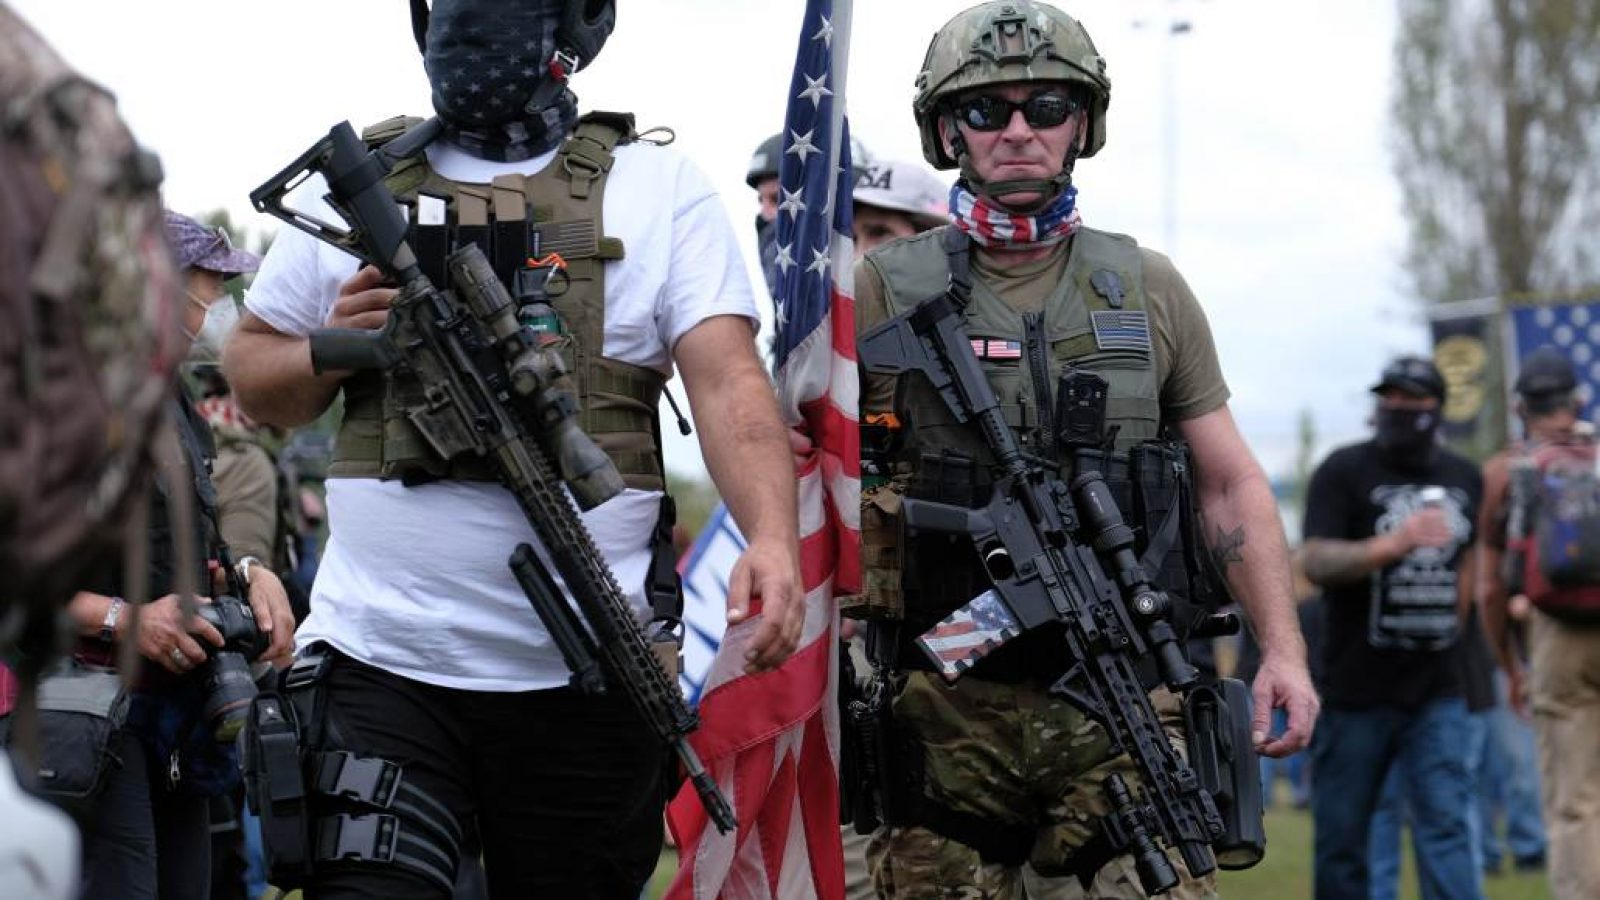 Men wearing bulletproof vests carry rifles and a large American flag